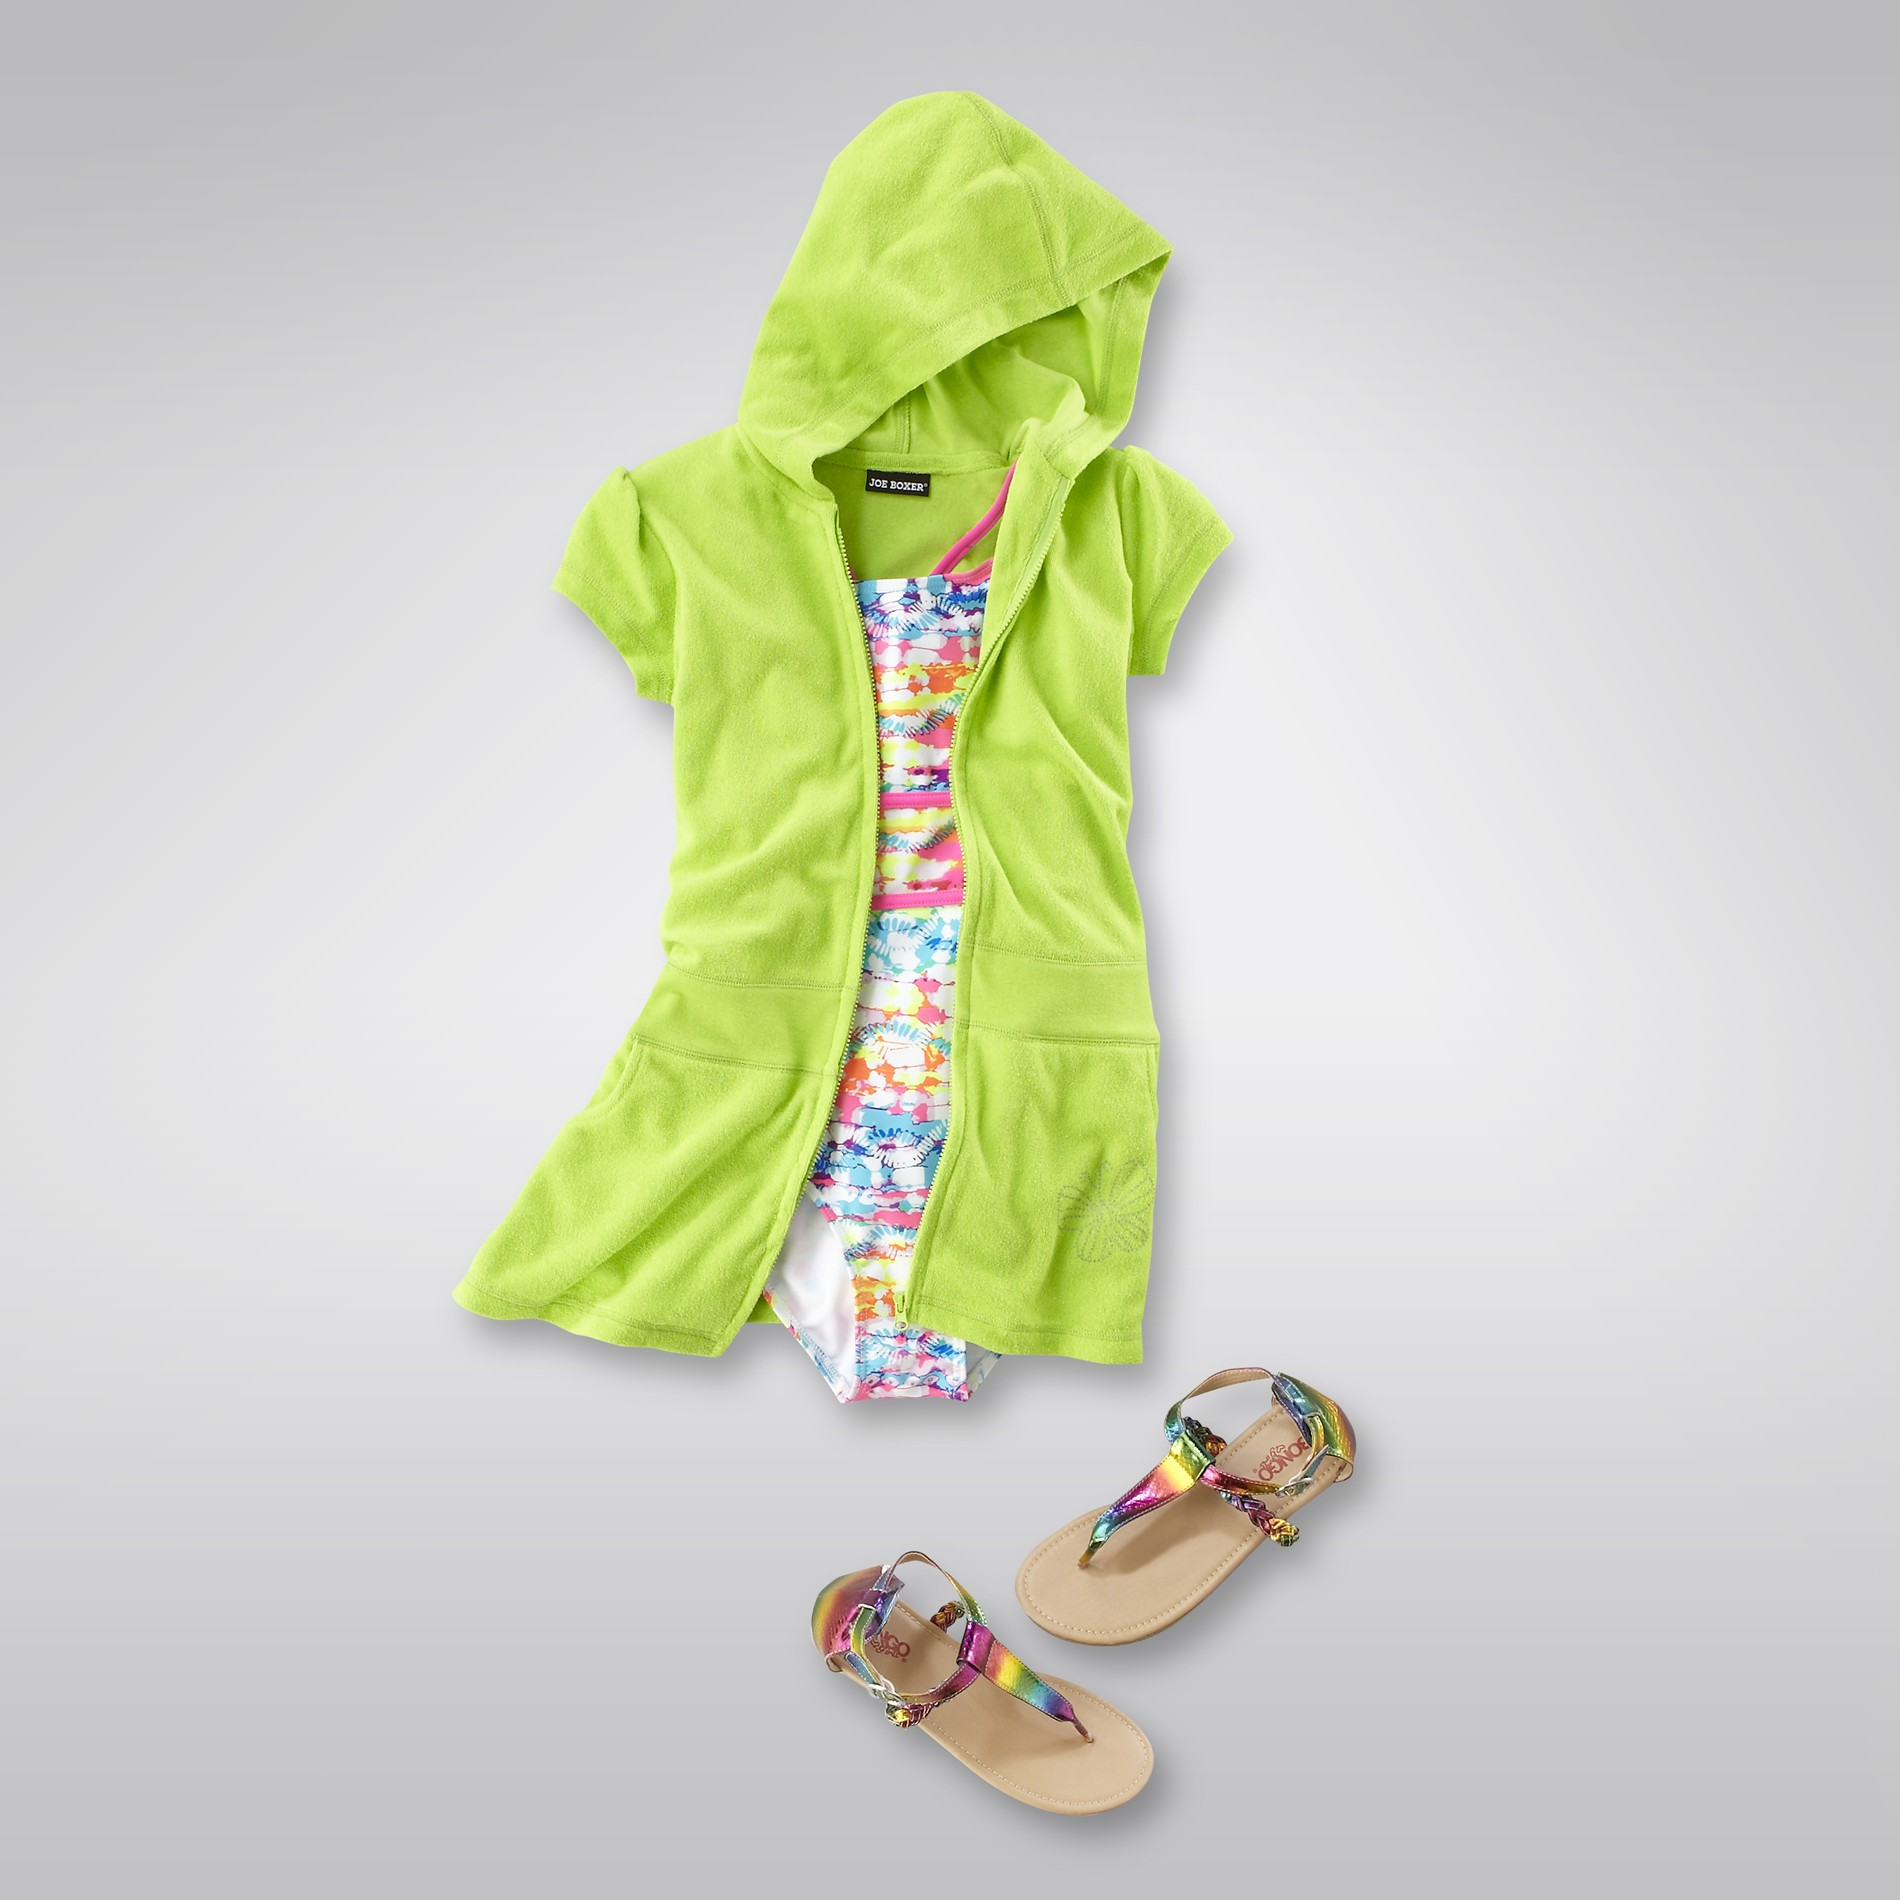 Neon Dreams Outfit at Kmart.com